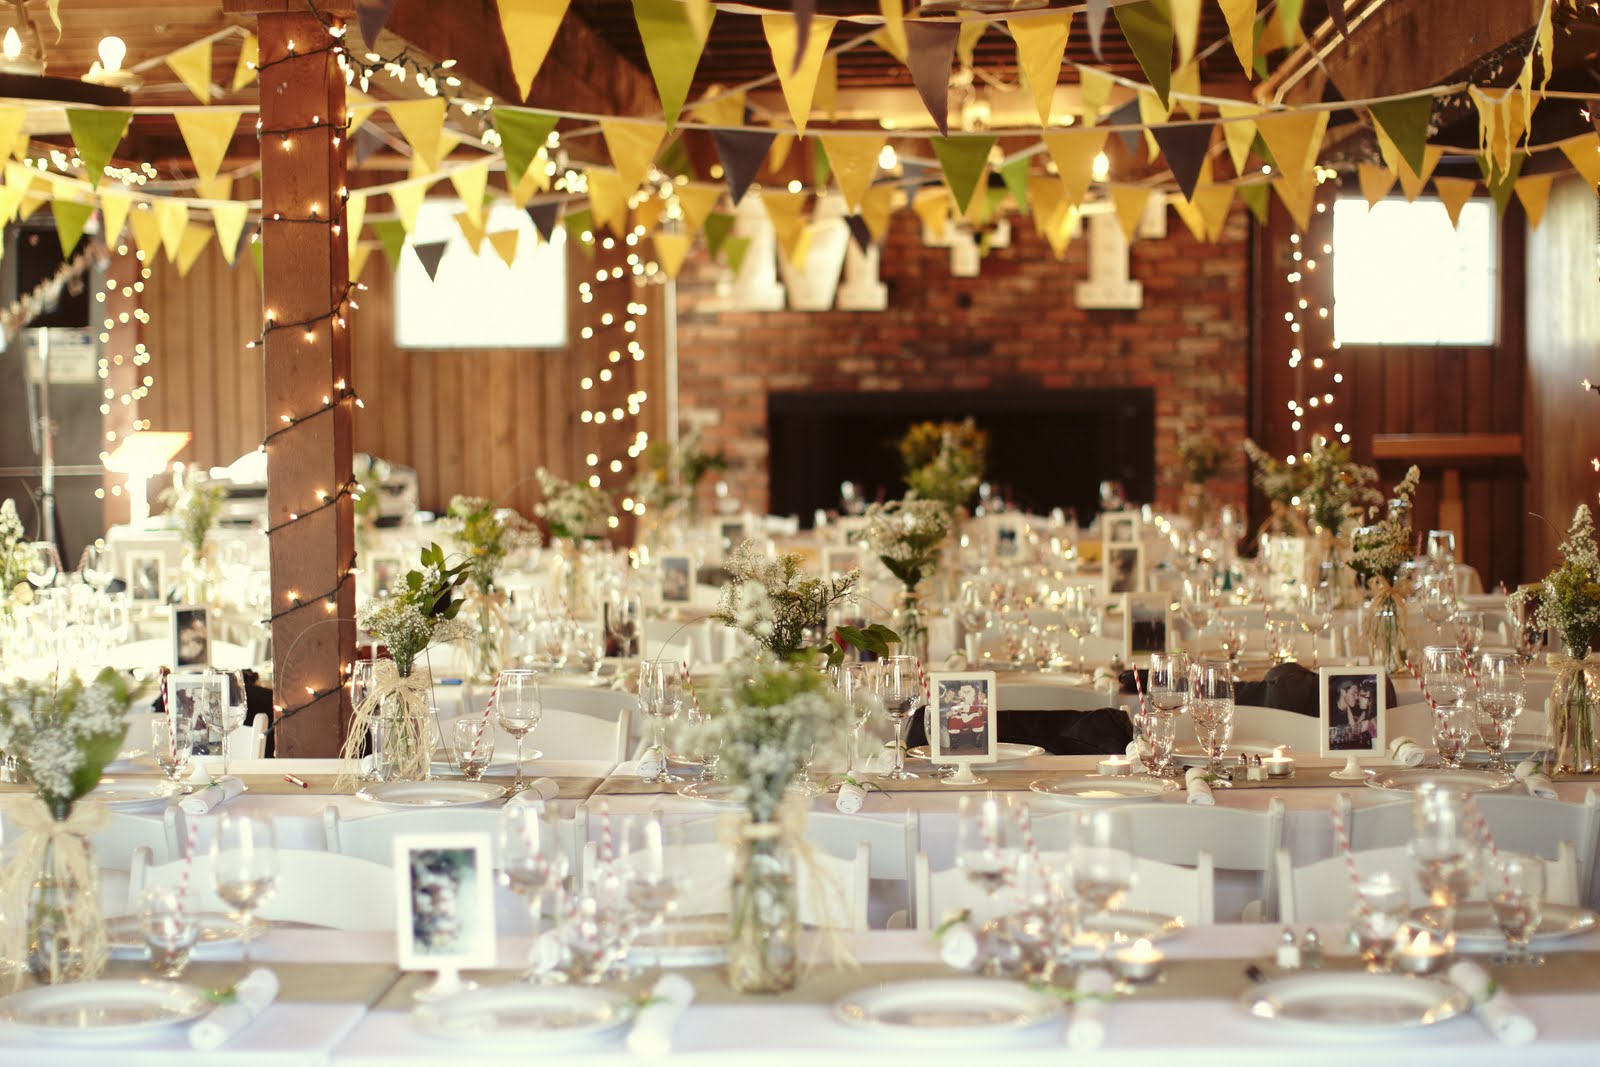 The Shawnessy Barn is a perfect venue to express your personality. Custom details like these handmade pennants are fantastic!